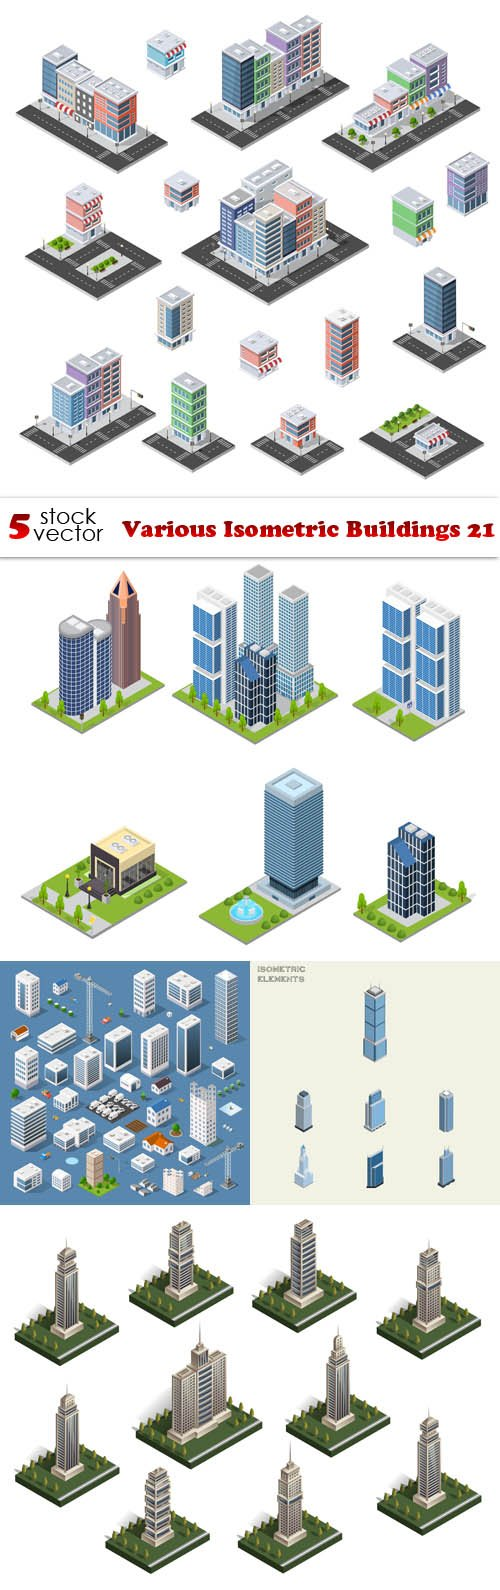 Vectors - Various Isometric Buildings 21